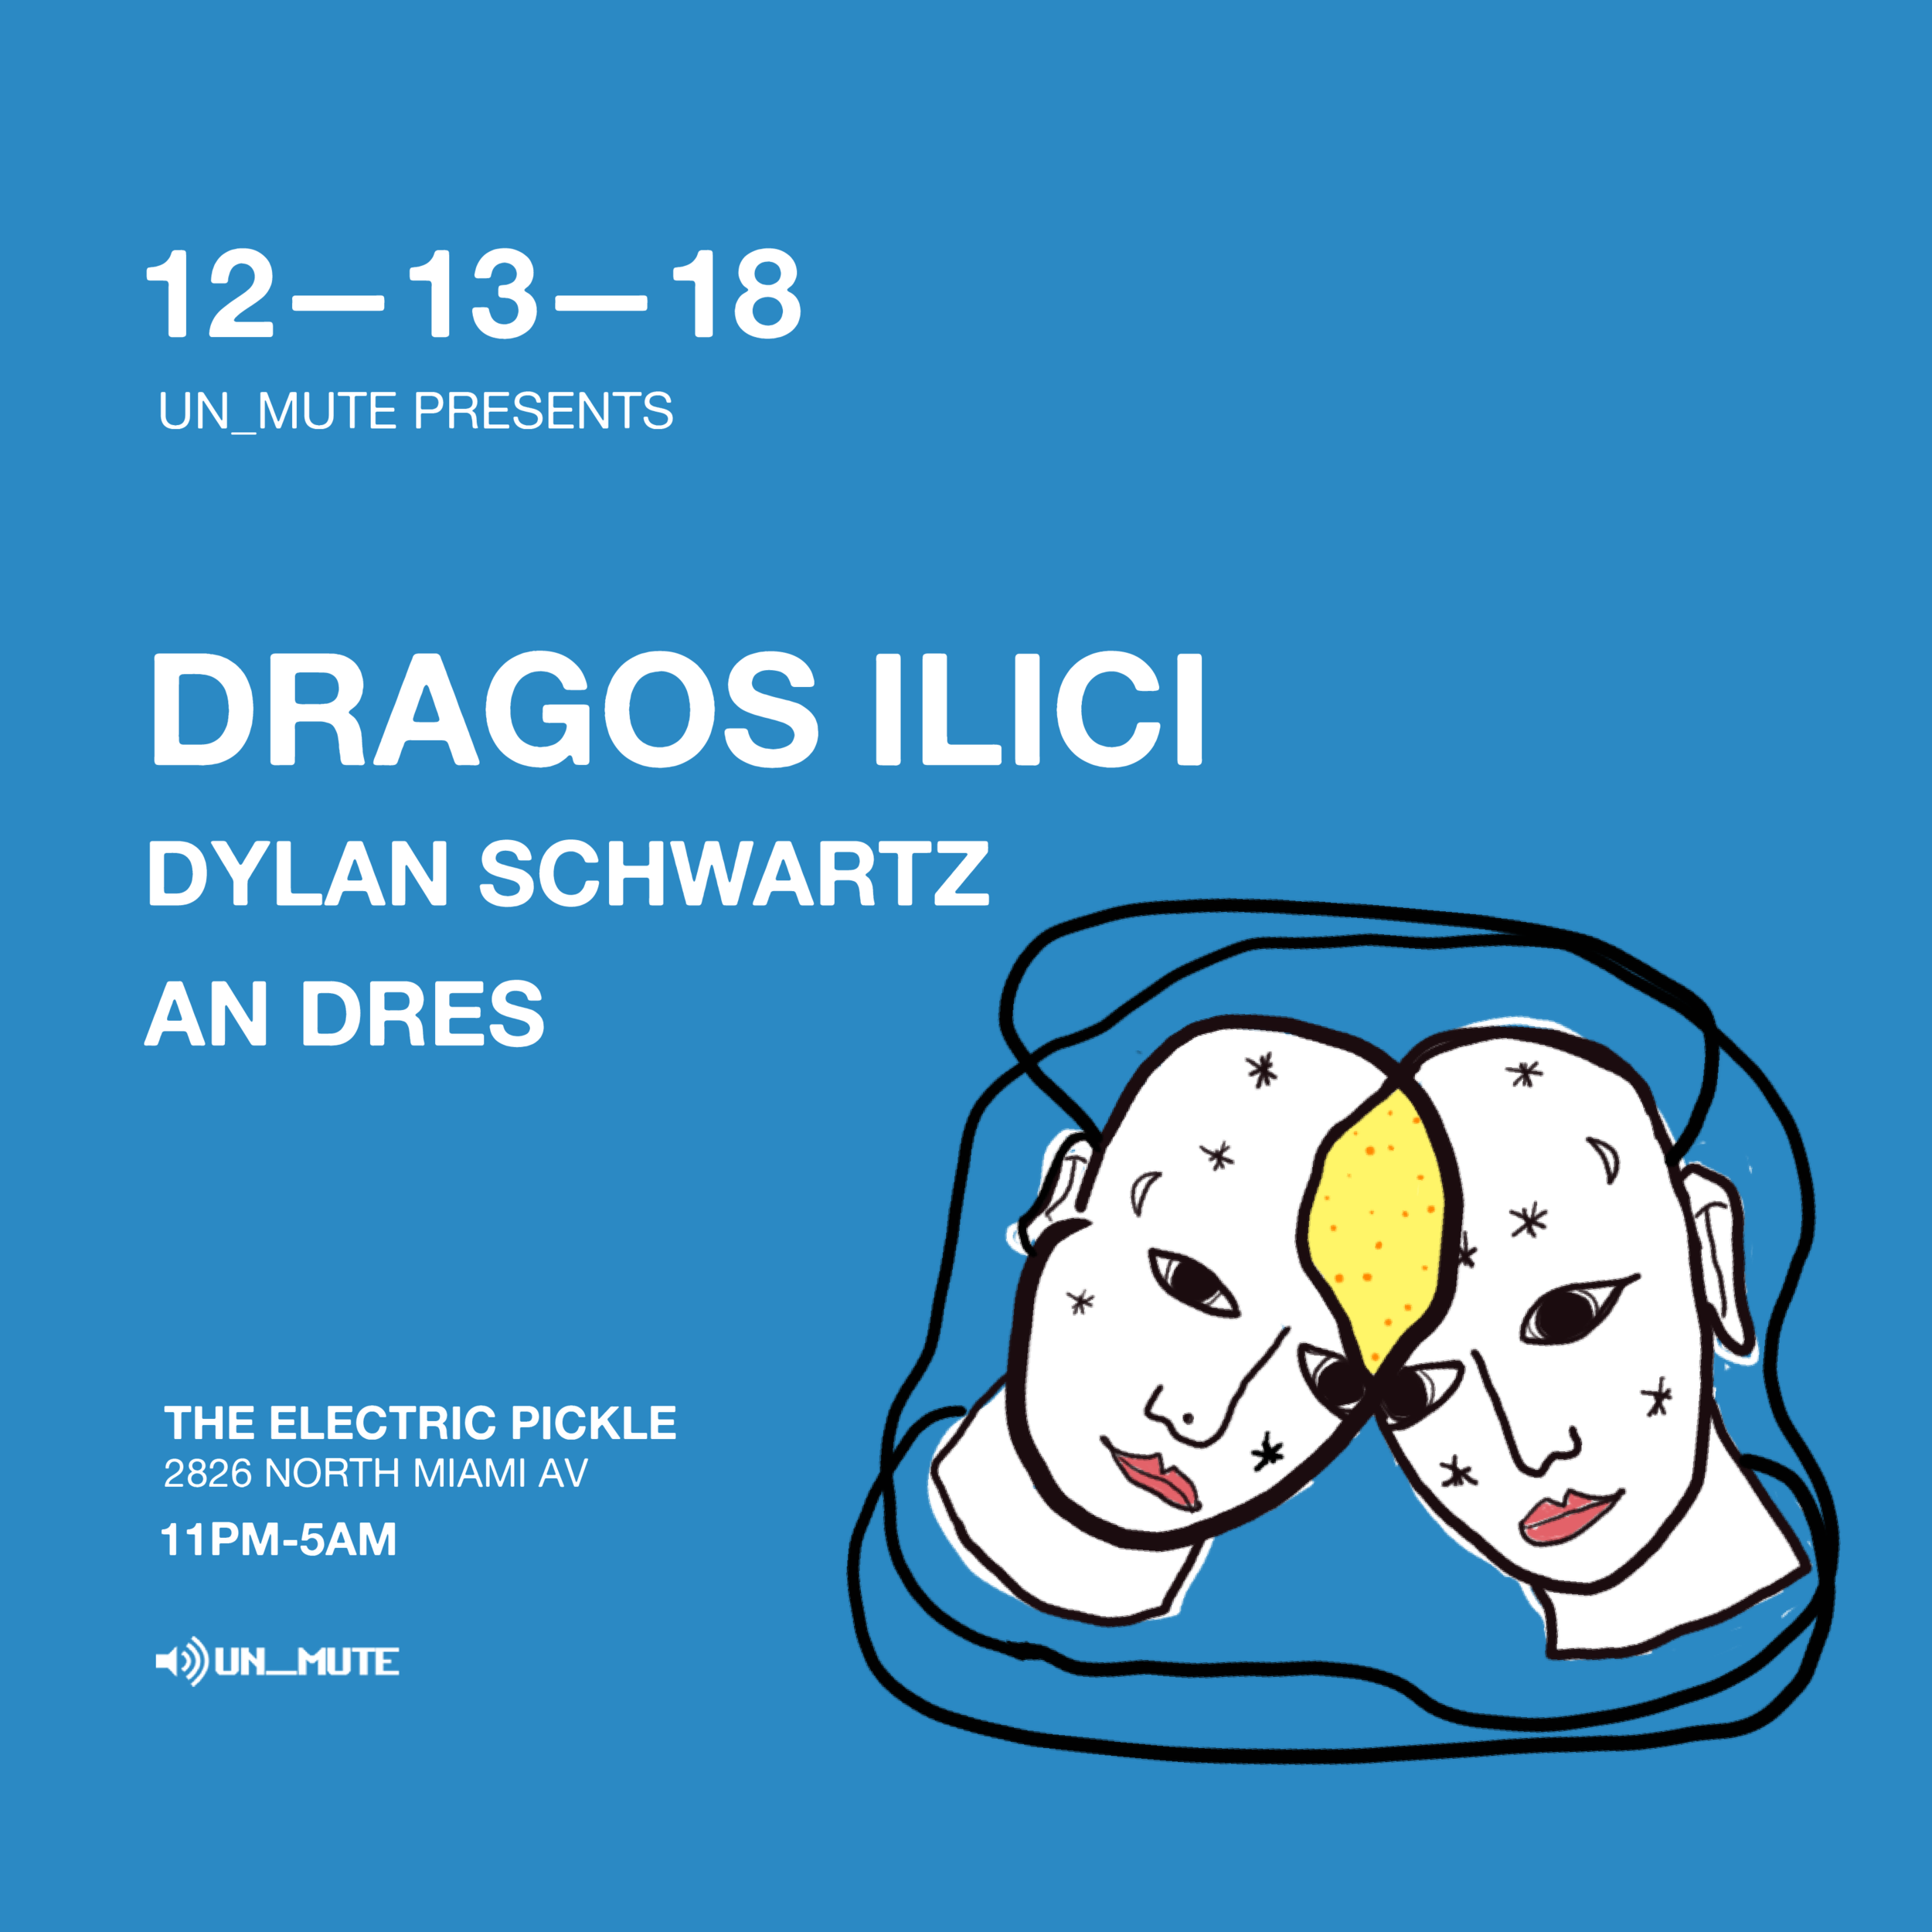 Dragos_ilici-01.png